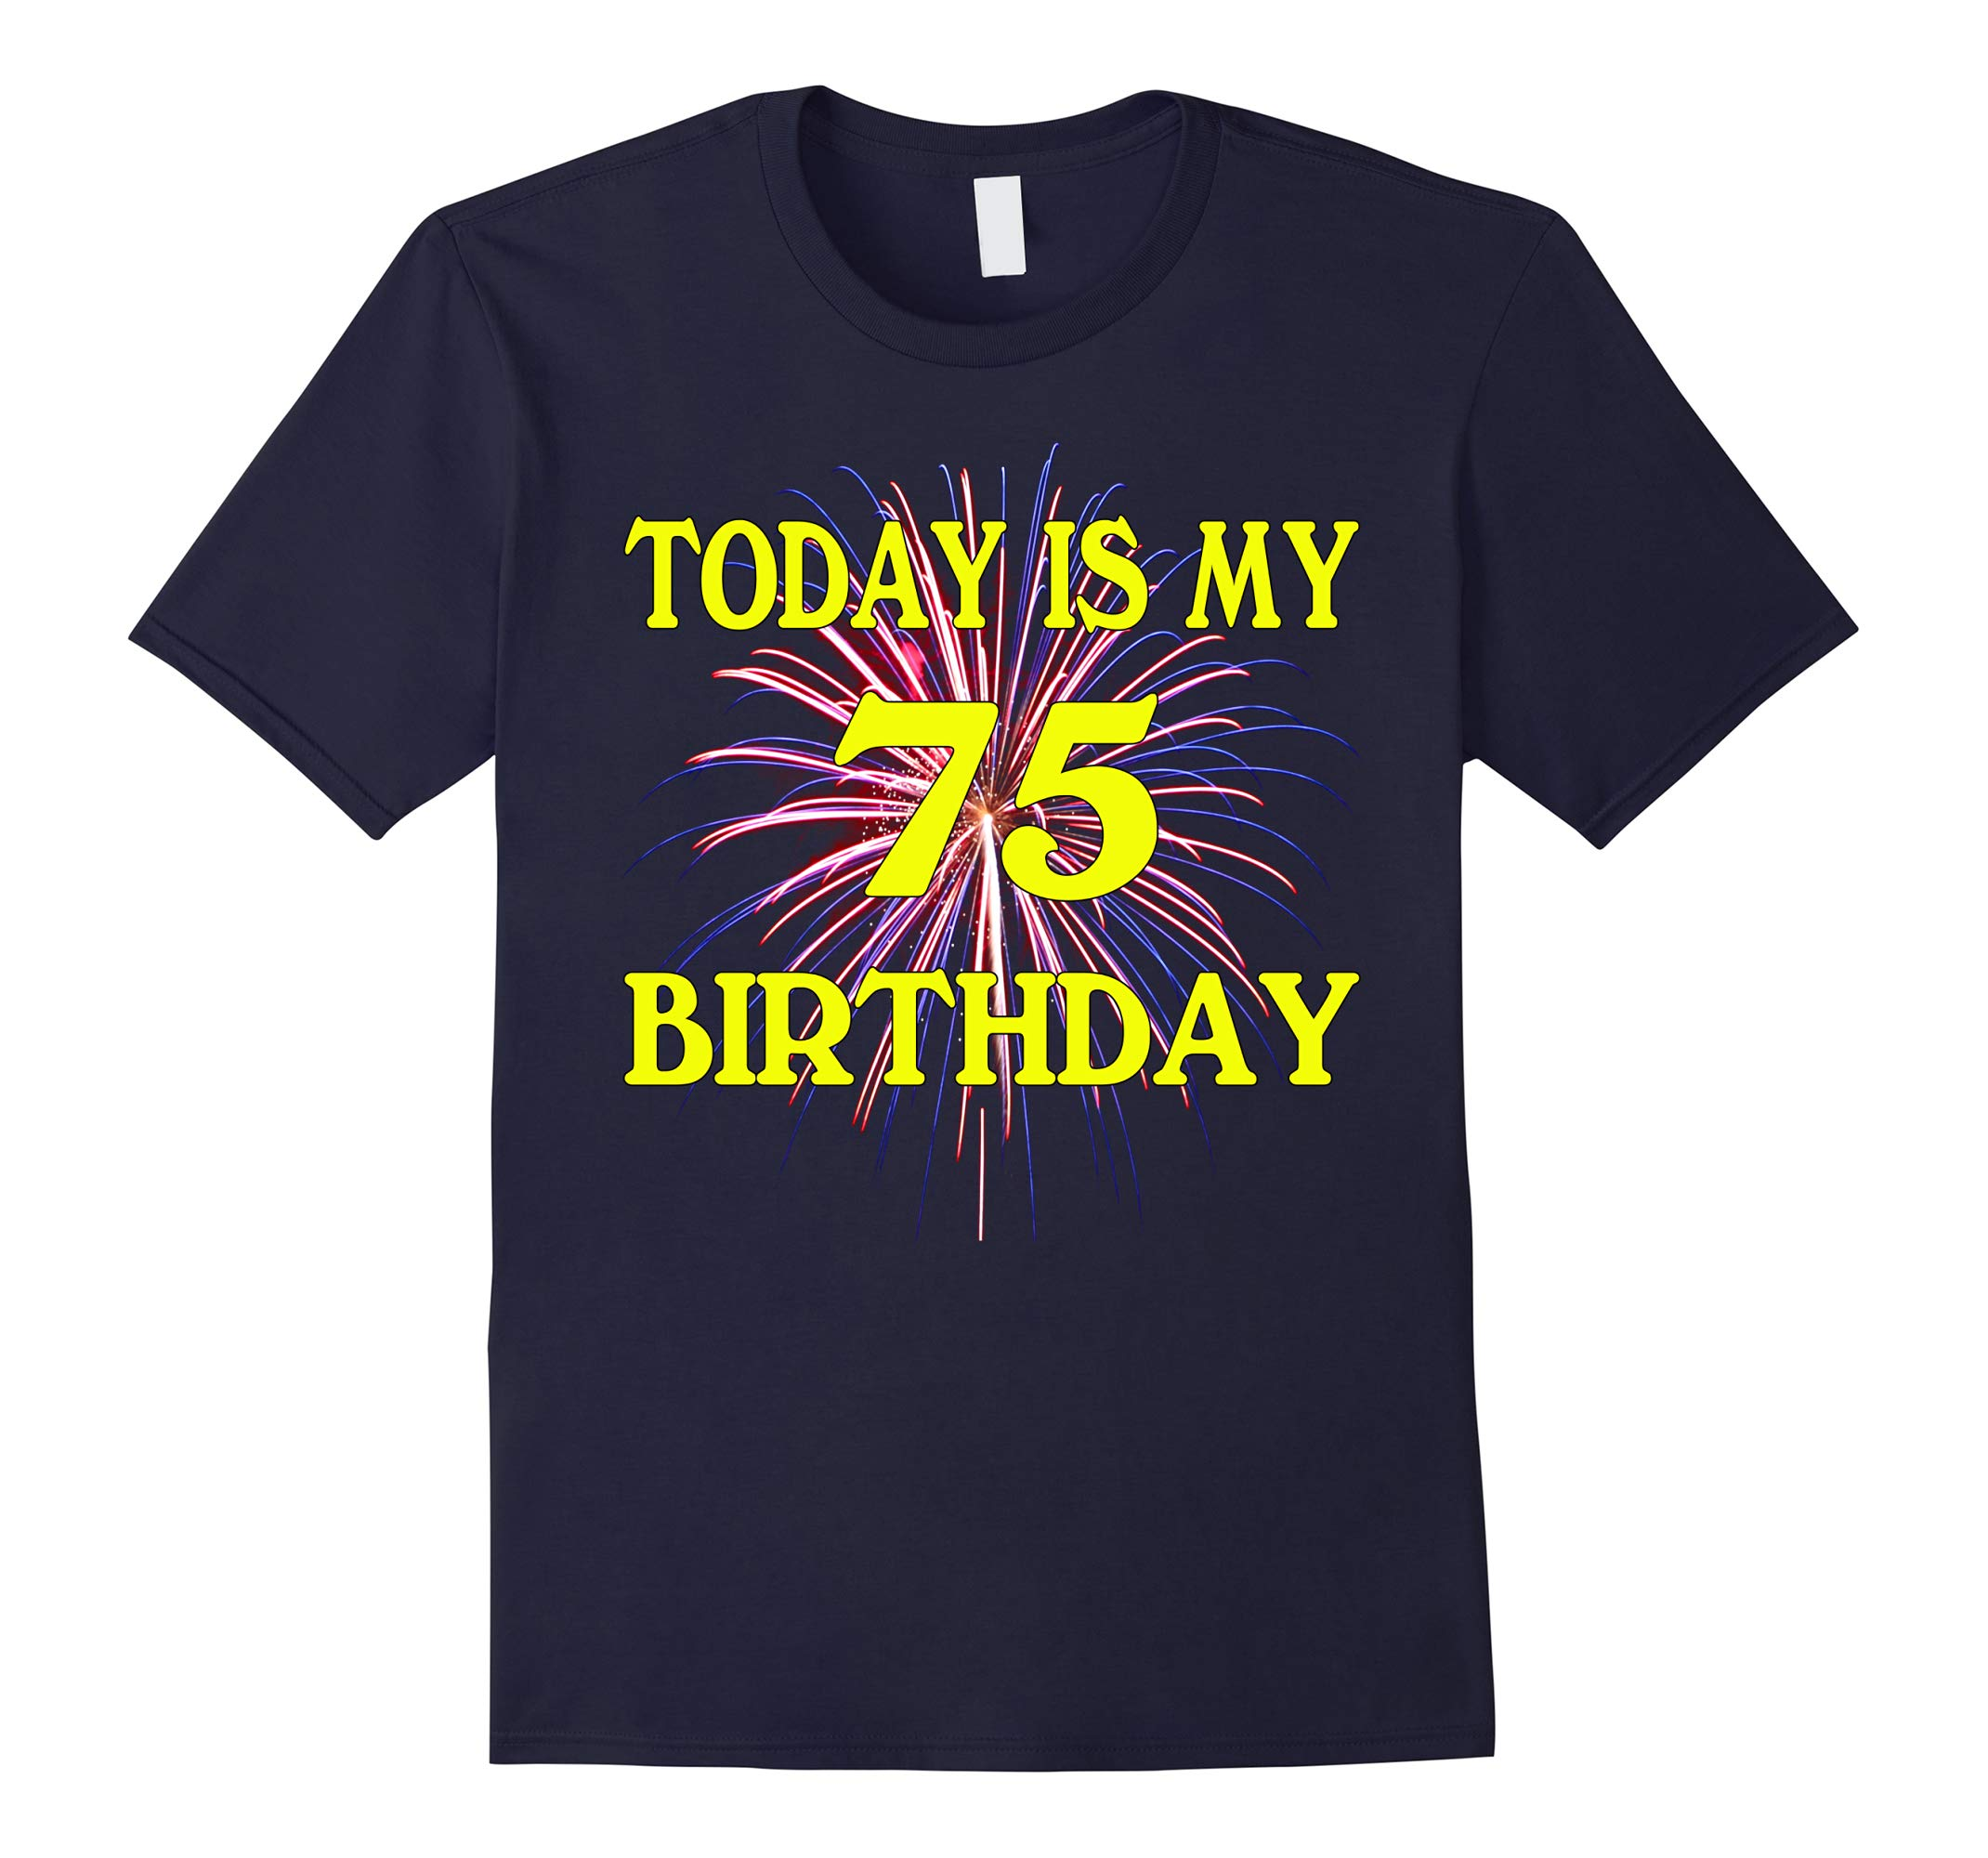 Today Is My 75th Birthday Shirt 75 Years Old 75th Birthday-RT